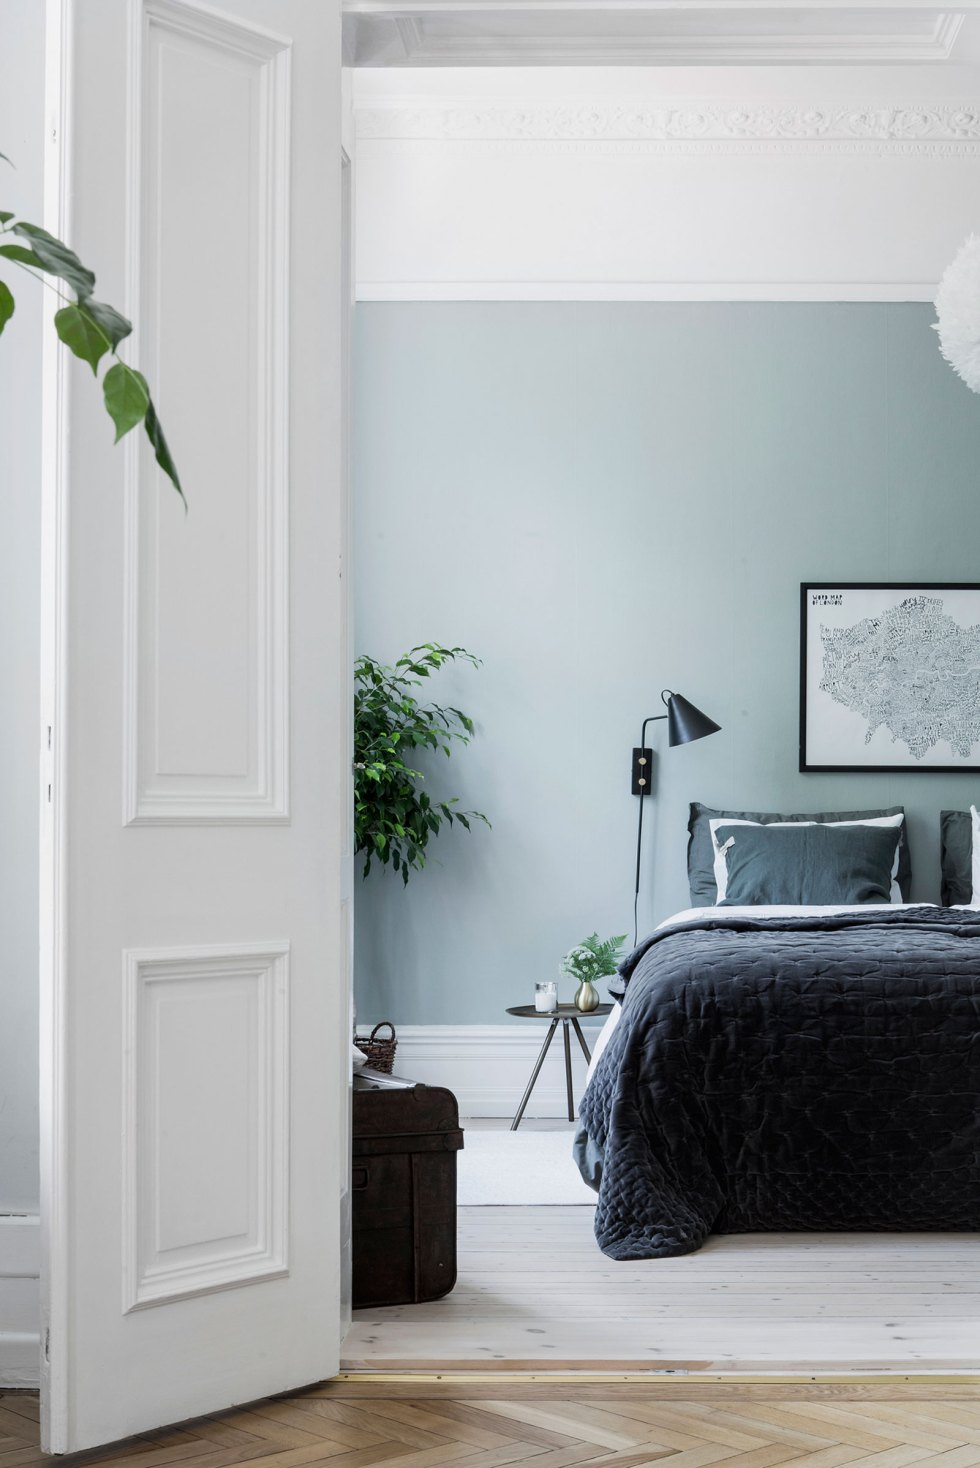 a welcoming Scandinavian bedroom with light green walls, a vintage chest for storage, a bed with dark bedding, black sconces and black nightstands